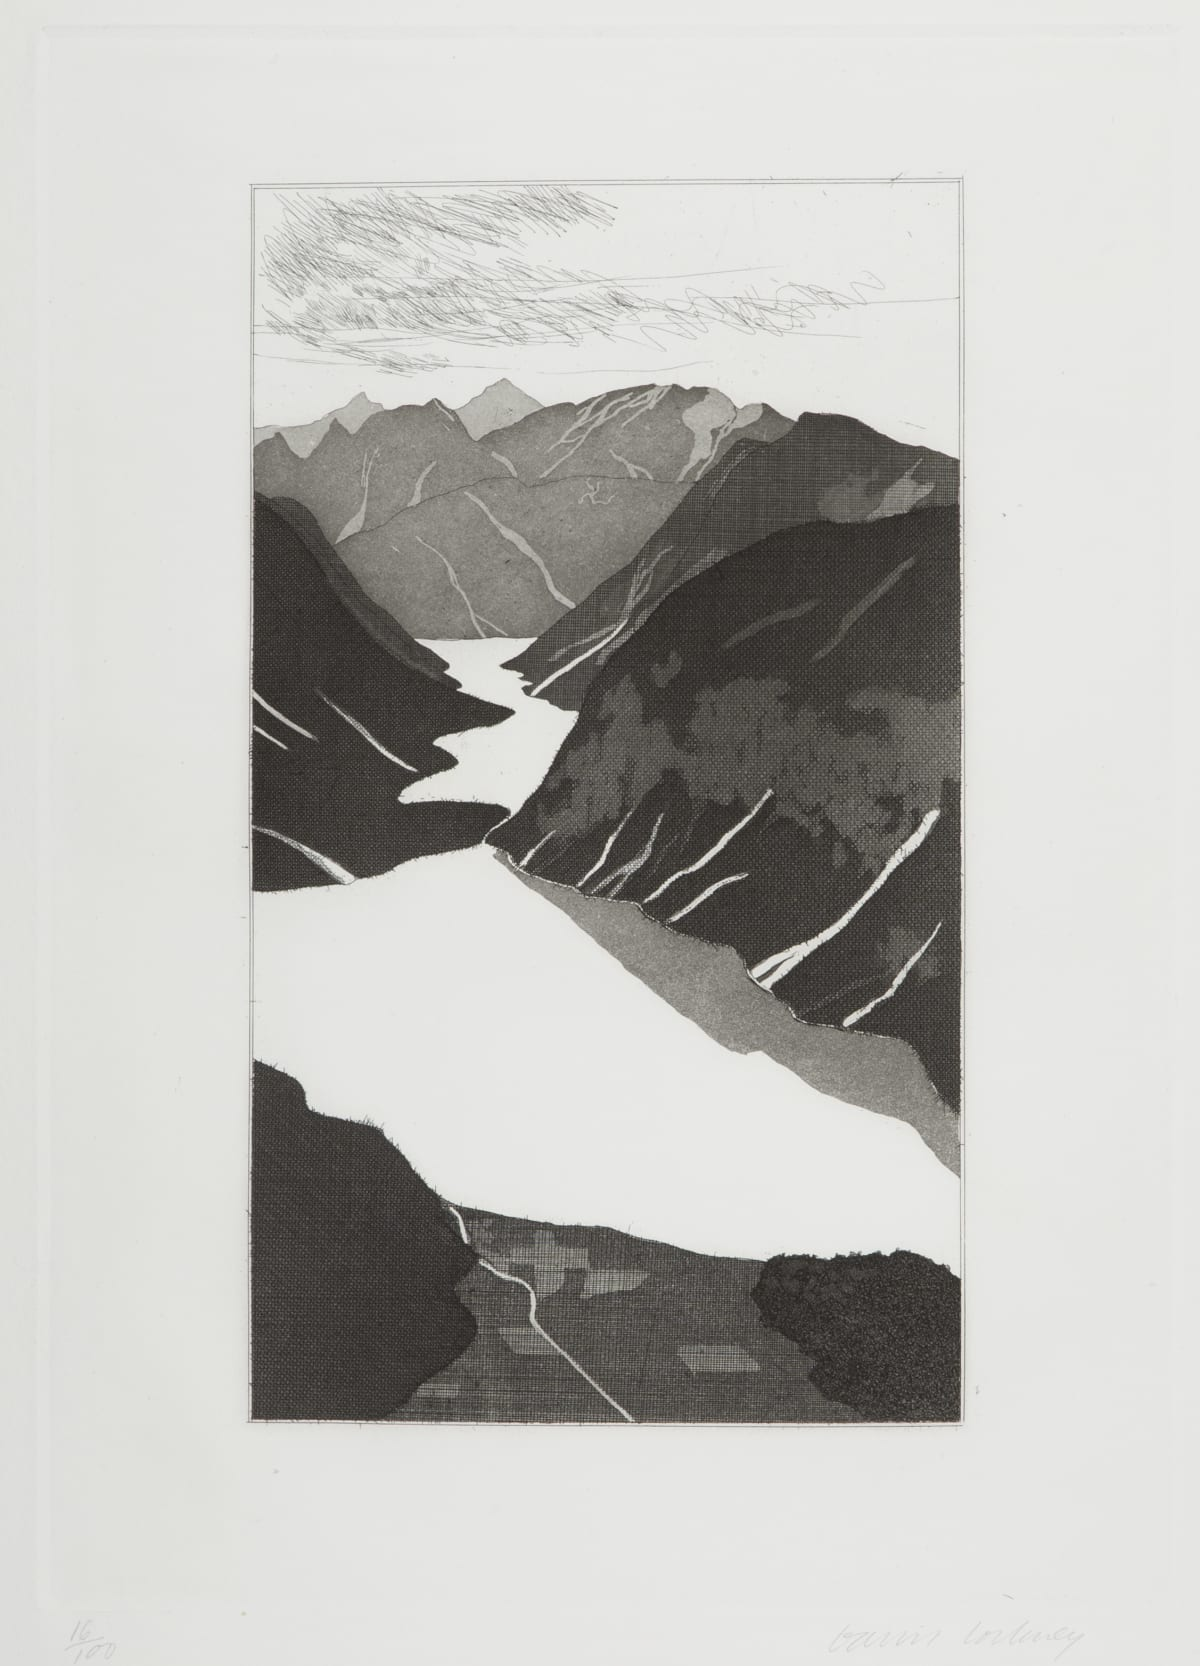 David Hockney The Lake, 1969 Etching and Aquatint Image Size: 44.2 x 31.8 cm / Paper Size: 62 x 44.7 cm Edition of 100